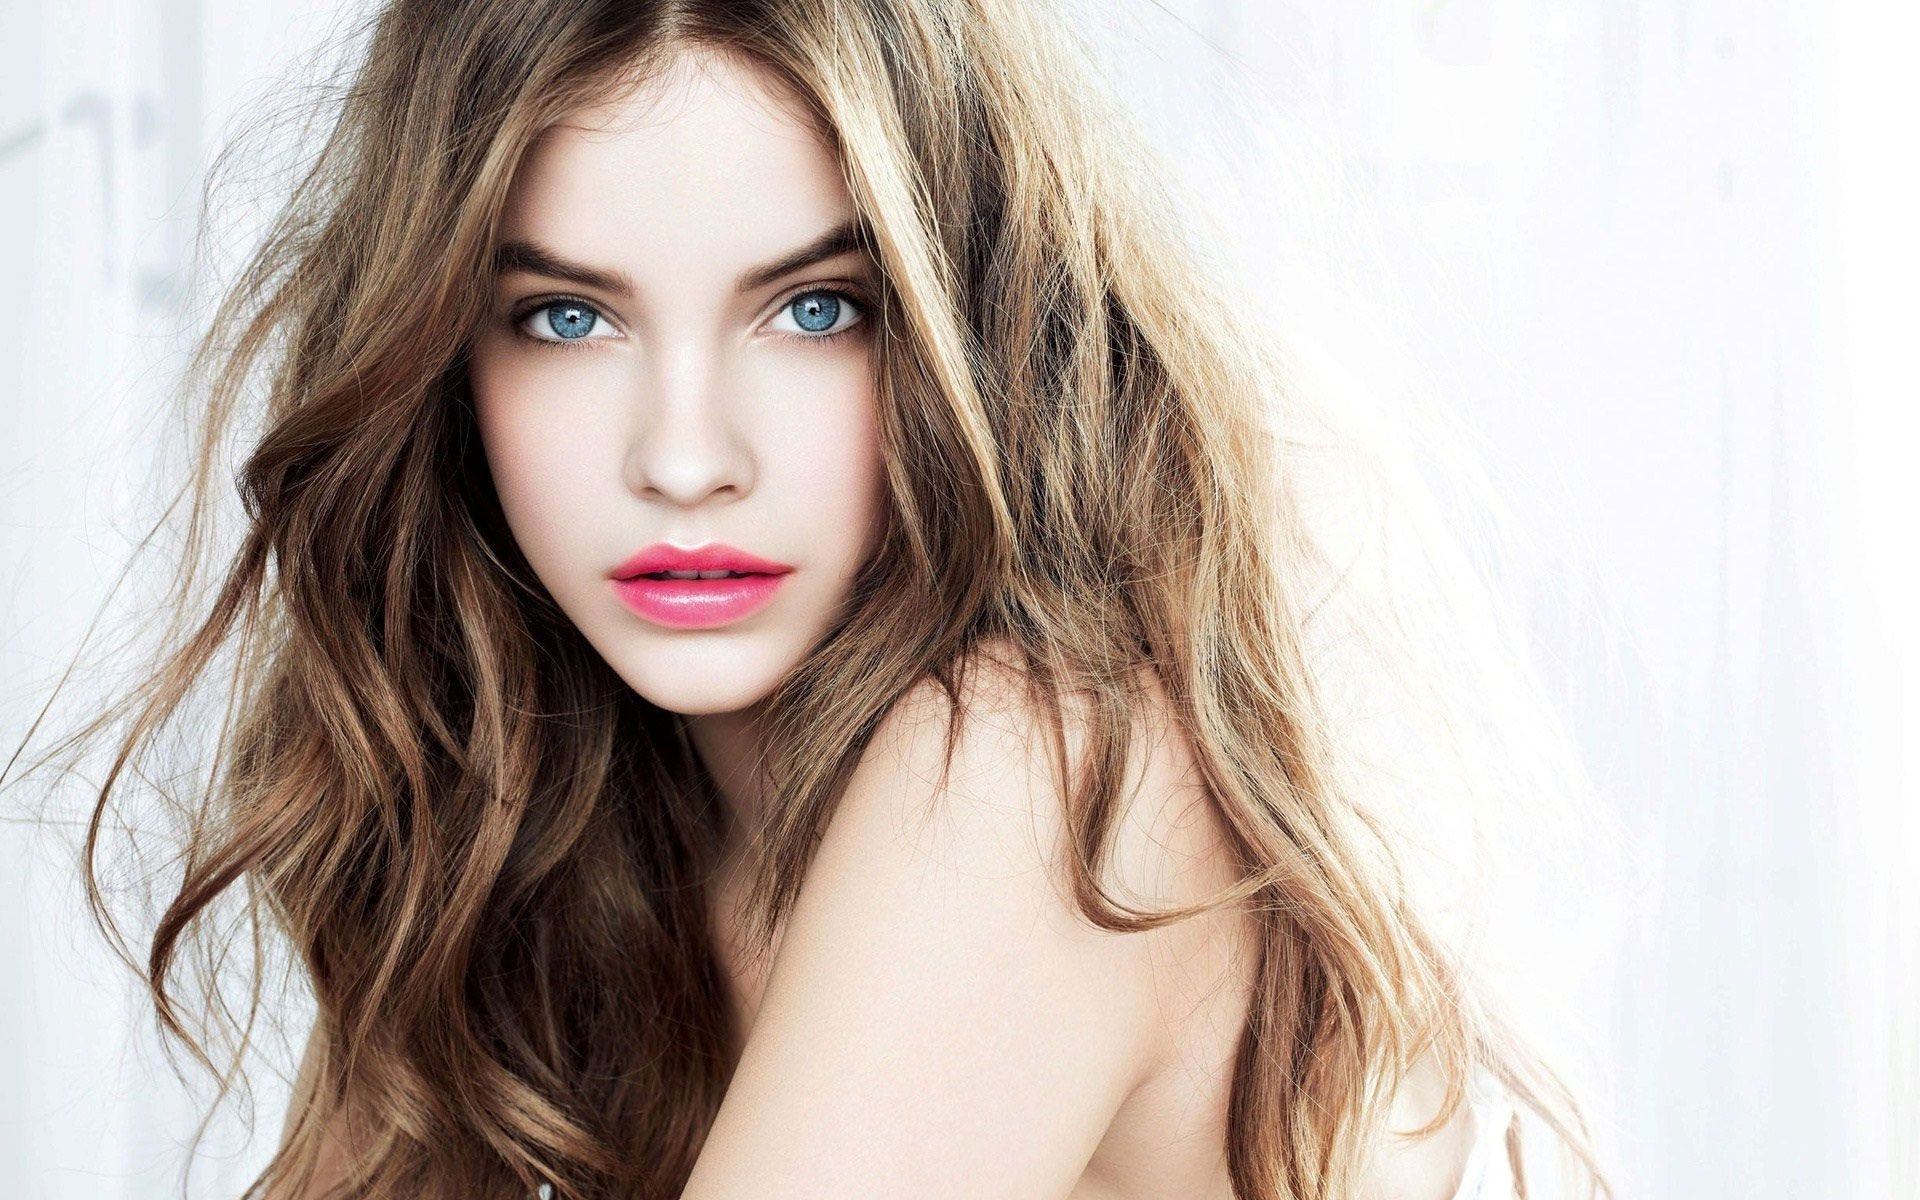 Seven Hair Color Ideas For Fair Skin Light And Dark Blondes Browns Striking Reds Rose Go Pale Skin Hair Color Hair Color For Fair Skin Brunette Hair Color